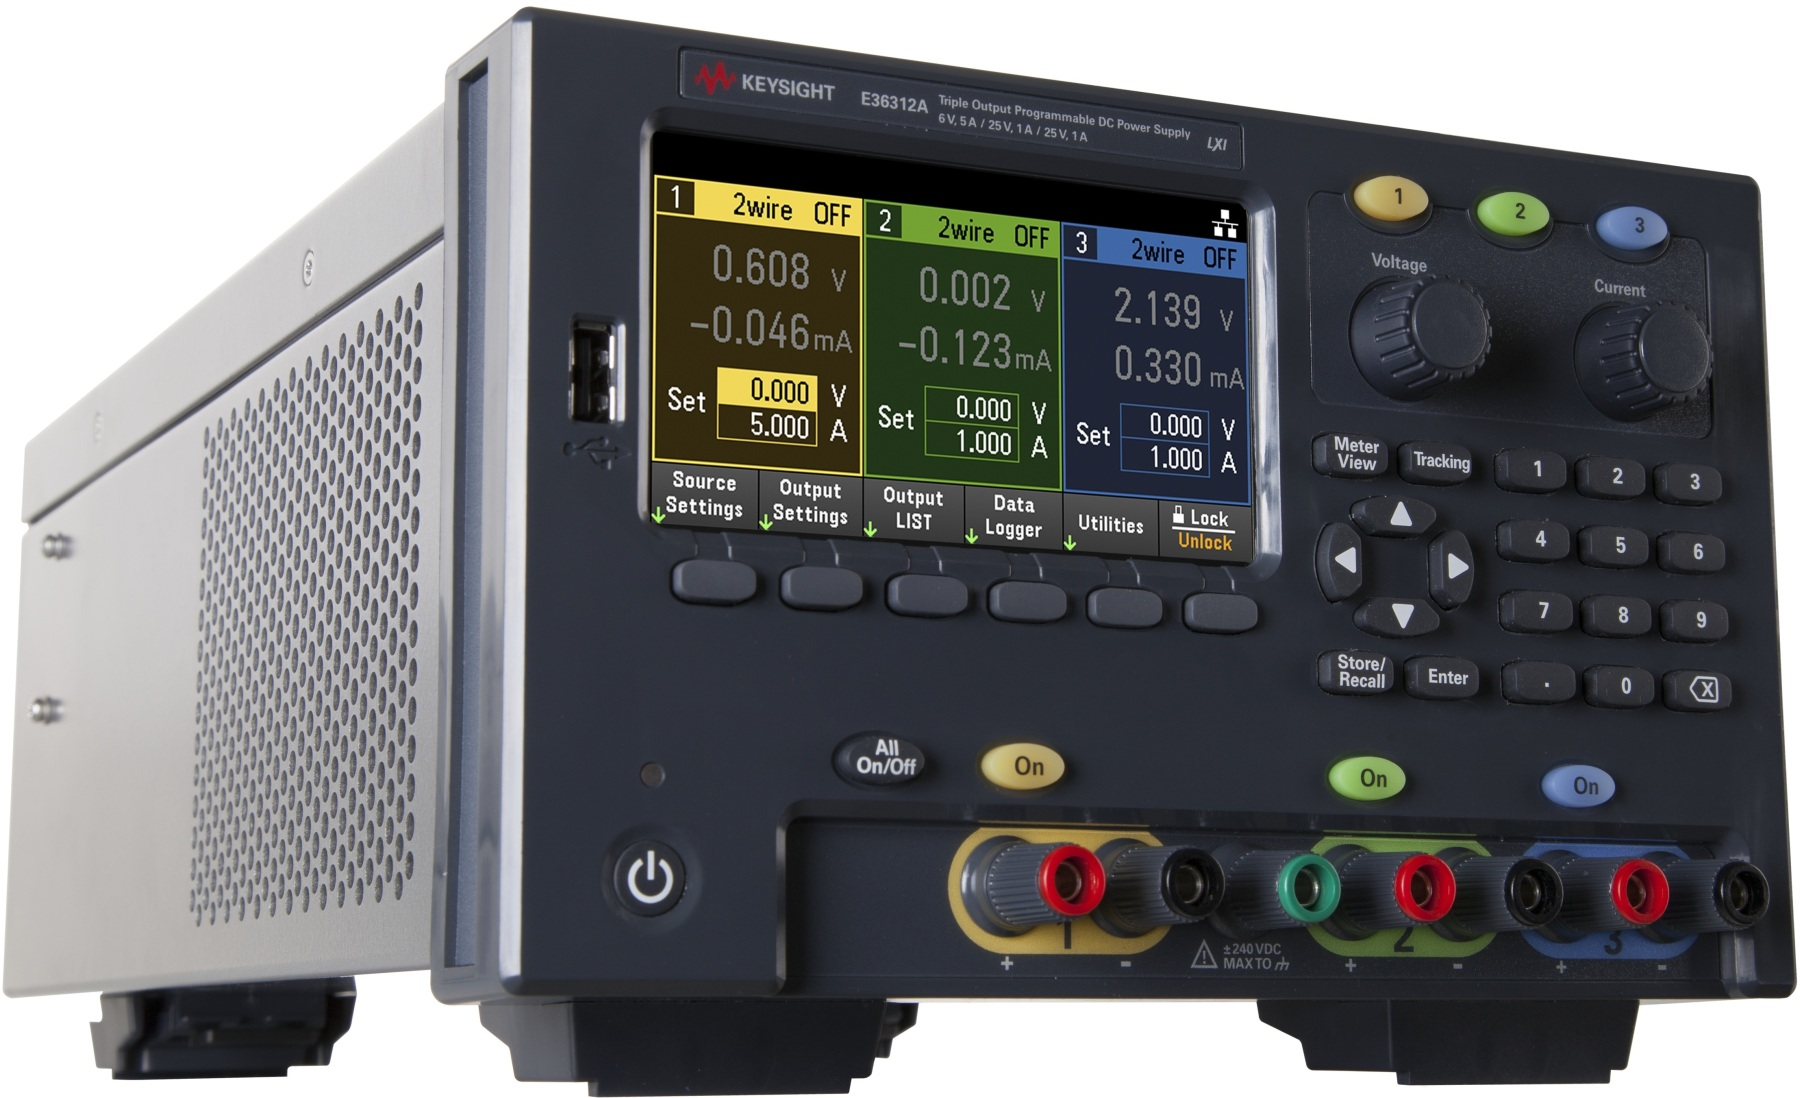 Keysight-E36300-series-triple-output-dc-power-supplies_1800x1098_1497650062